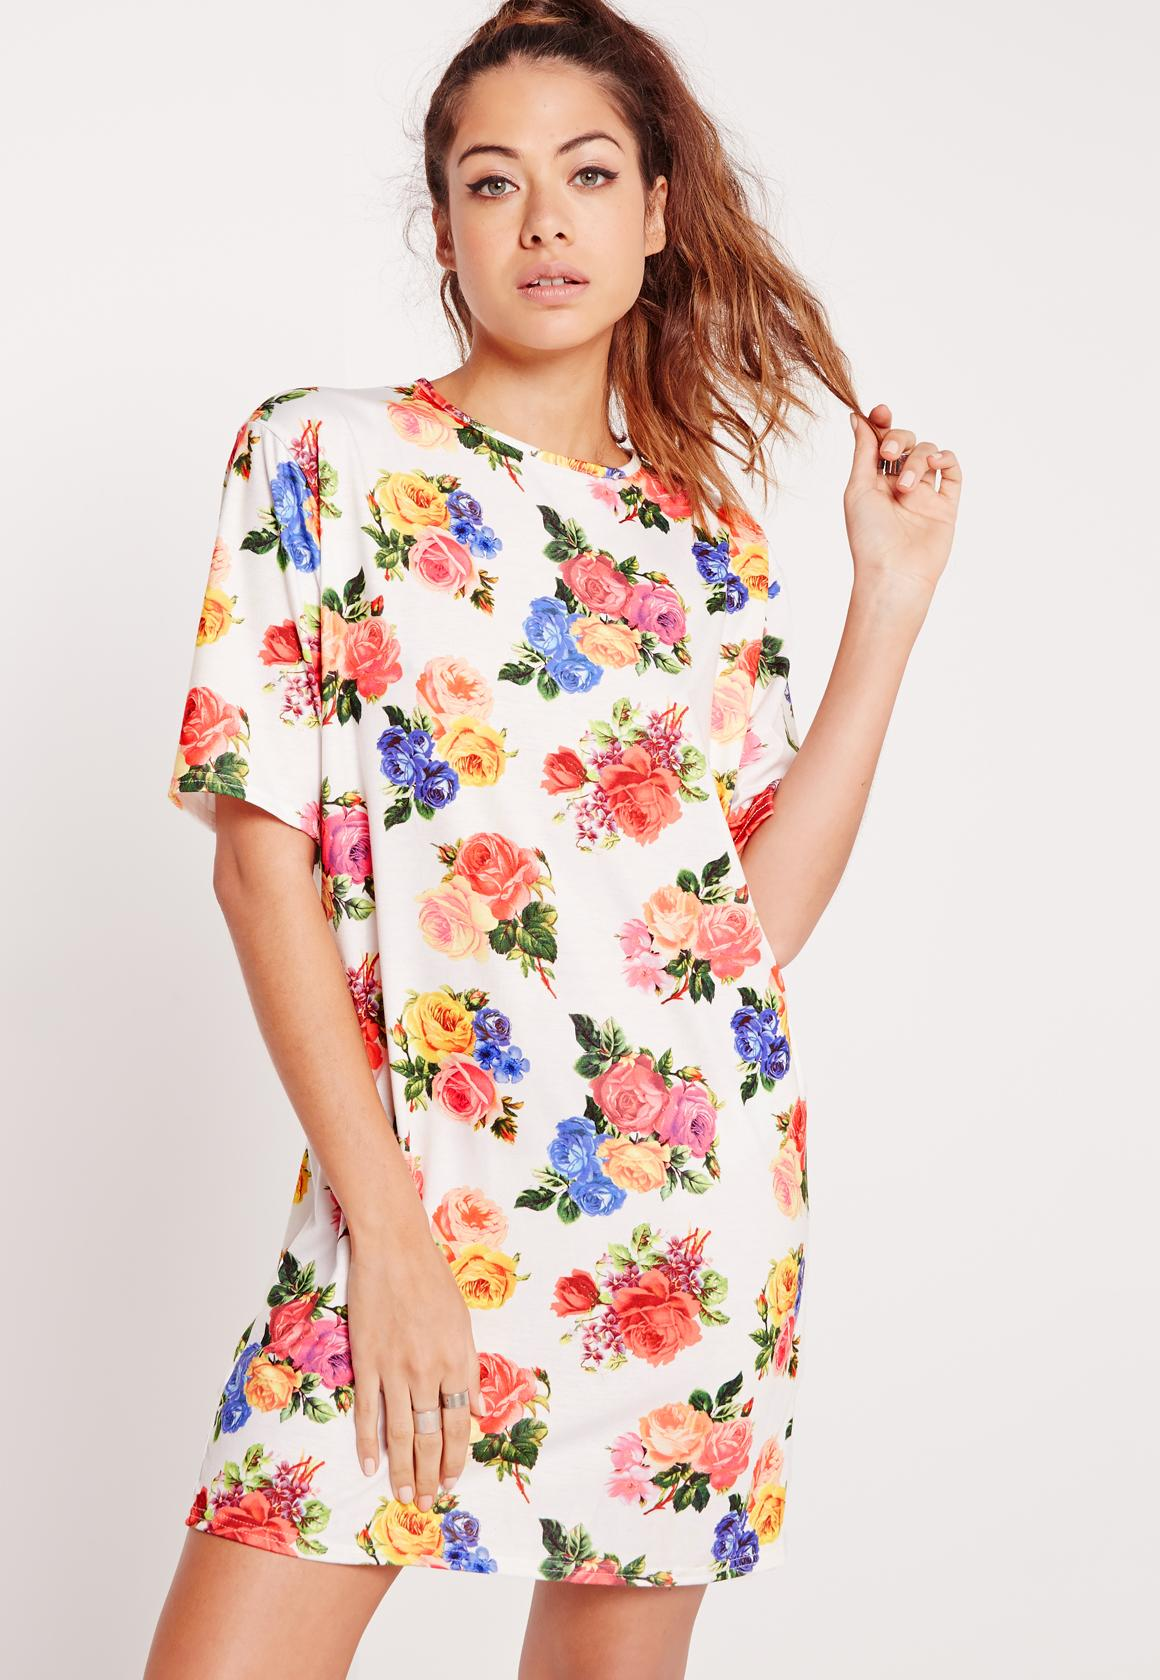 Missguided Floral Print Shirt Dress Free Shipping Big Discount Lowest Price Outlet Amazon With Paypal Cheap Online Best Wholesale Cheap Price nMeU8ehHJa